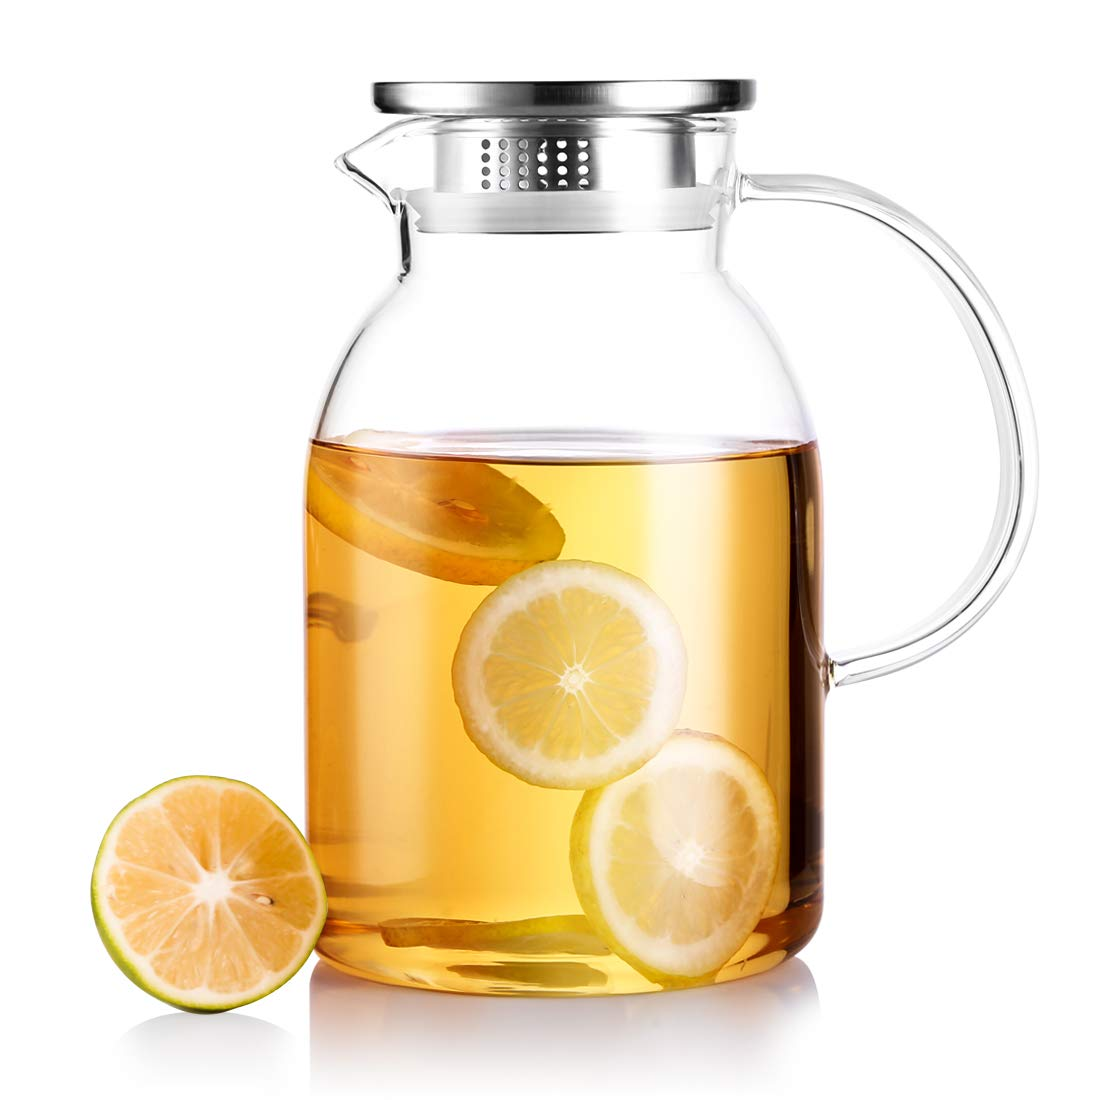 JIAQI 62 Ounces Large Borosilicate Glass Pitcher with Stainless Steel Infuser Lid, High Resistance Water Carafe with Spout and Handle, Great for Hot/Cold Water, Iced Tea and and Juice Beverage